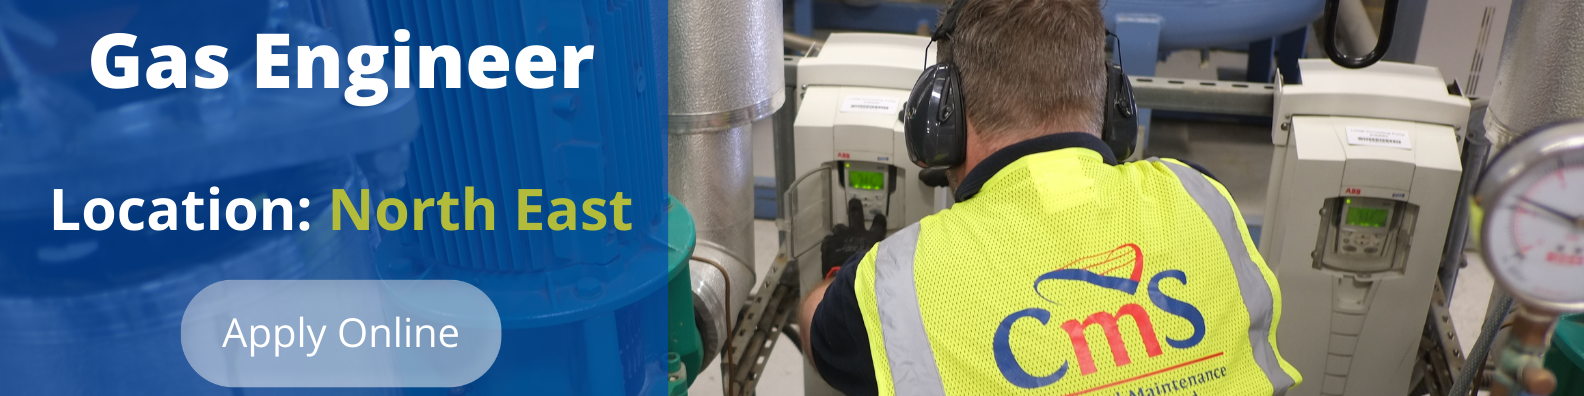 Gas Engineer Location North East Apply Online (1)